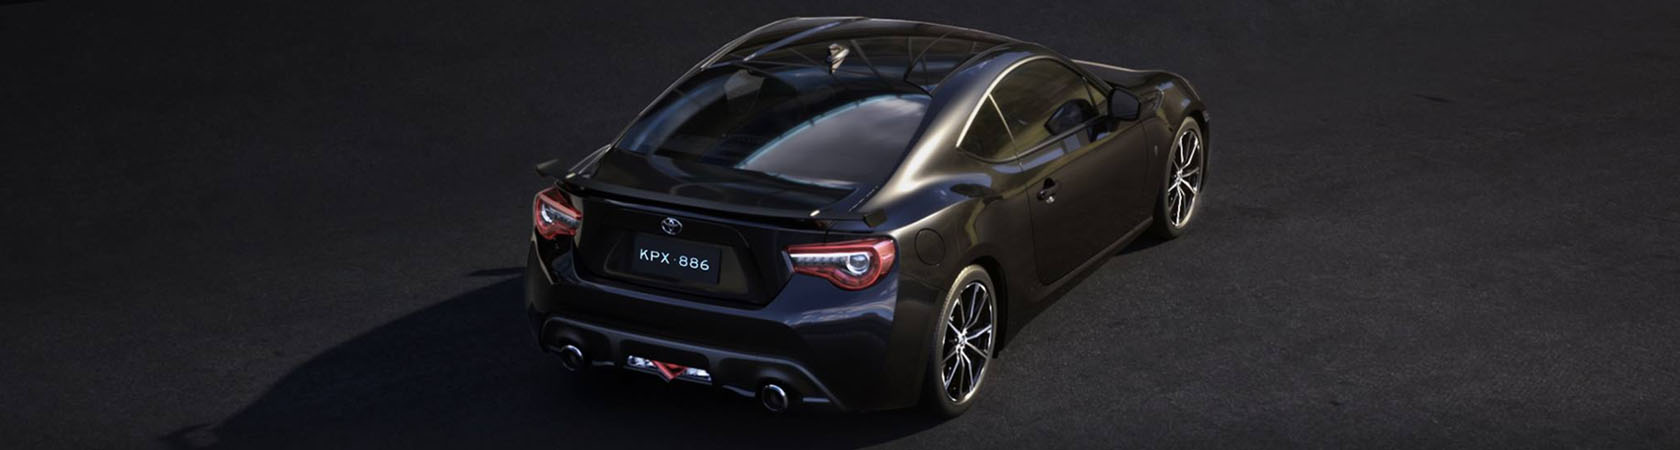 Coffs Harbour Toyota 86